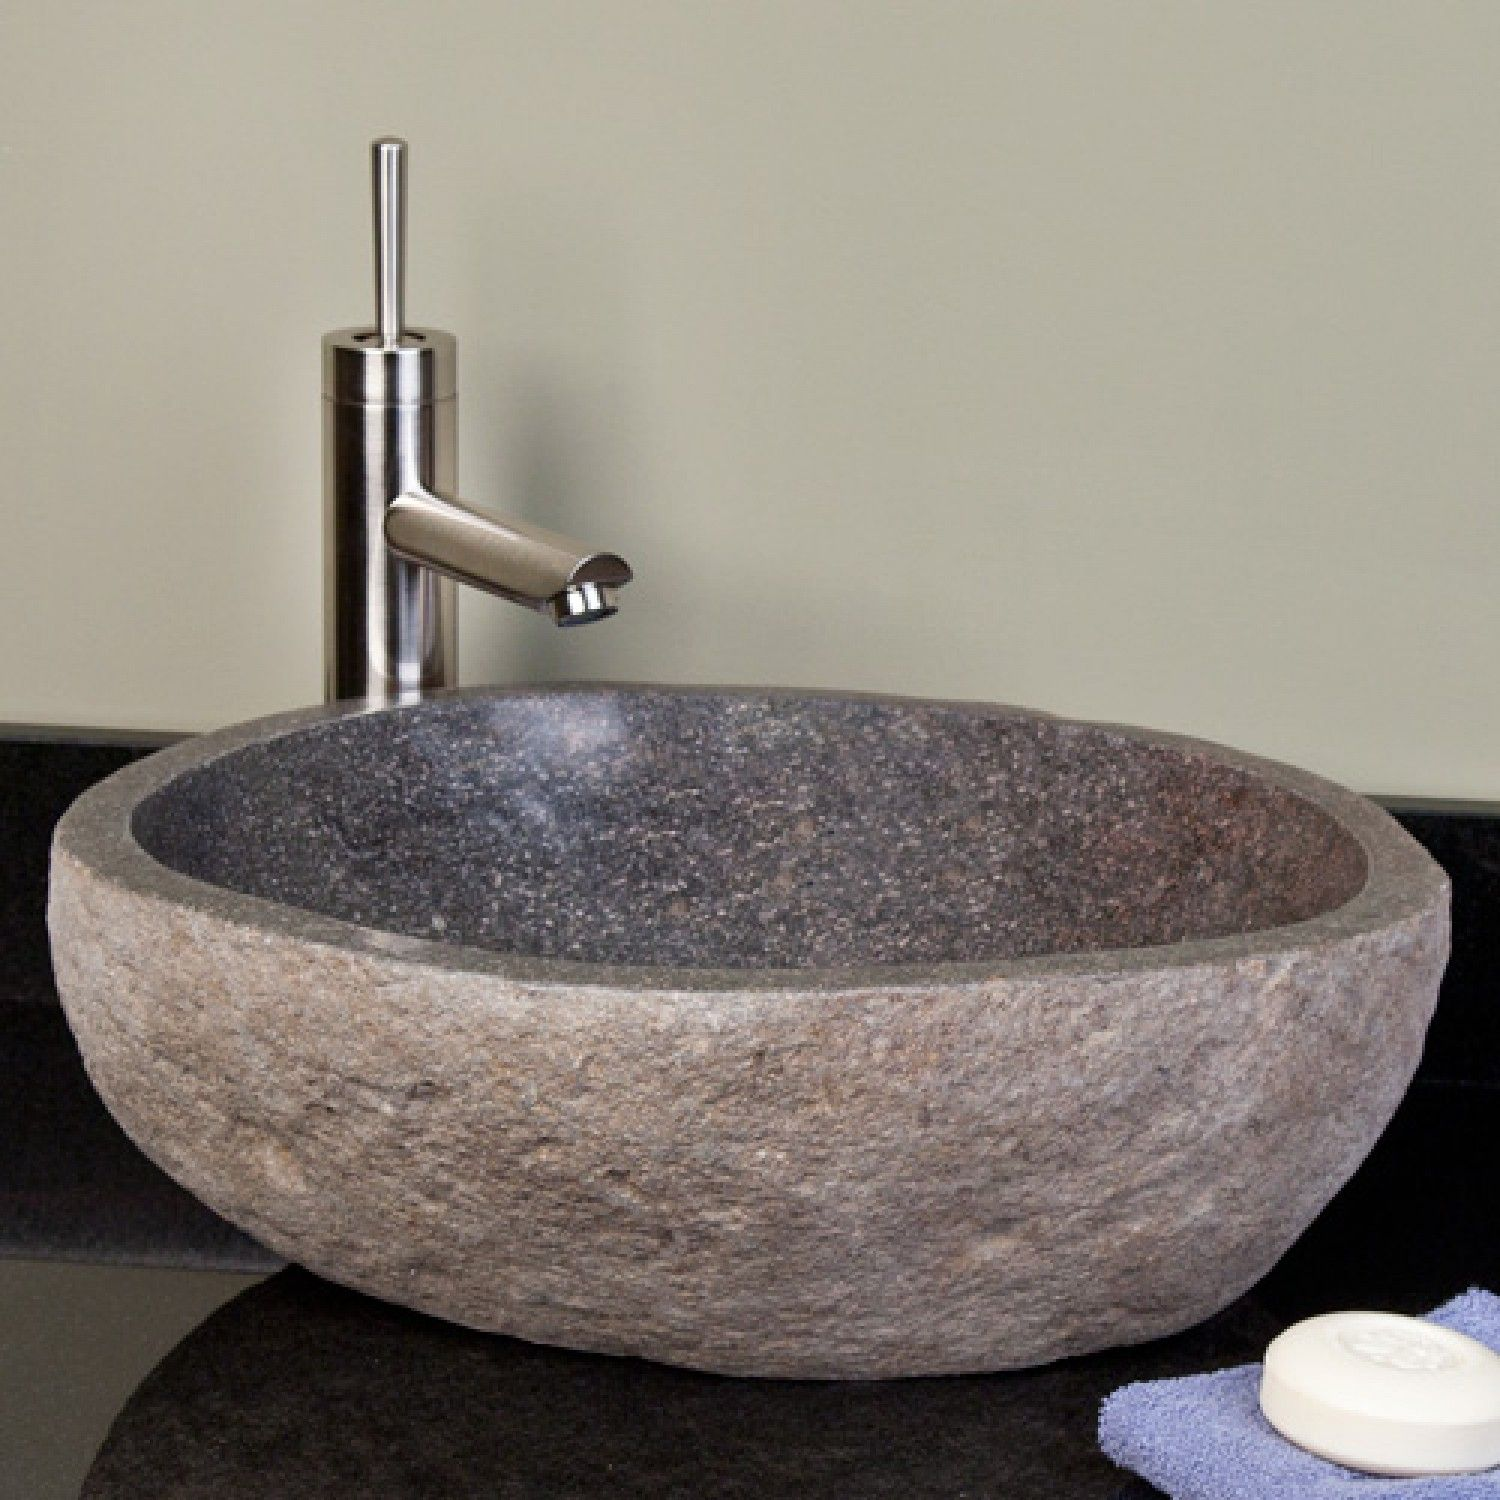 Dark Gray River Stone Vessel Sink  Vessel Sinks  Bathroom Sinks  Bathroom  Home Sweet Log